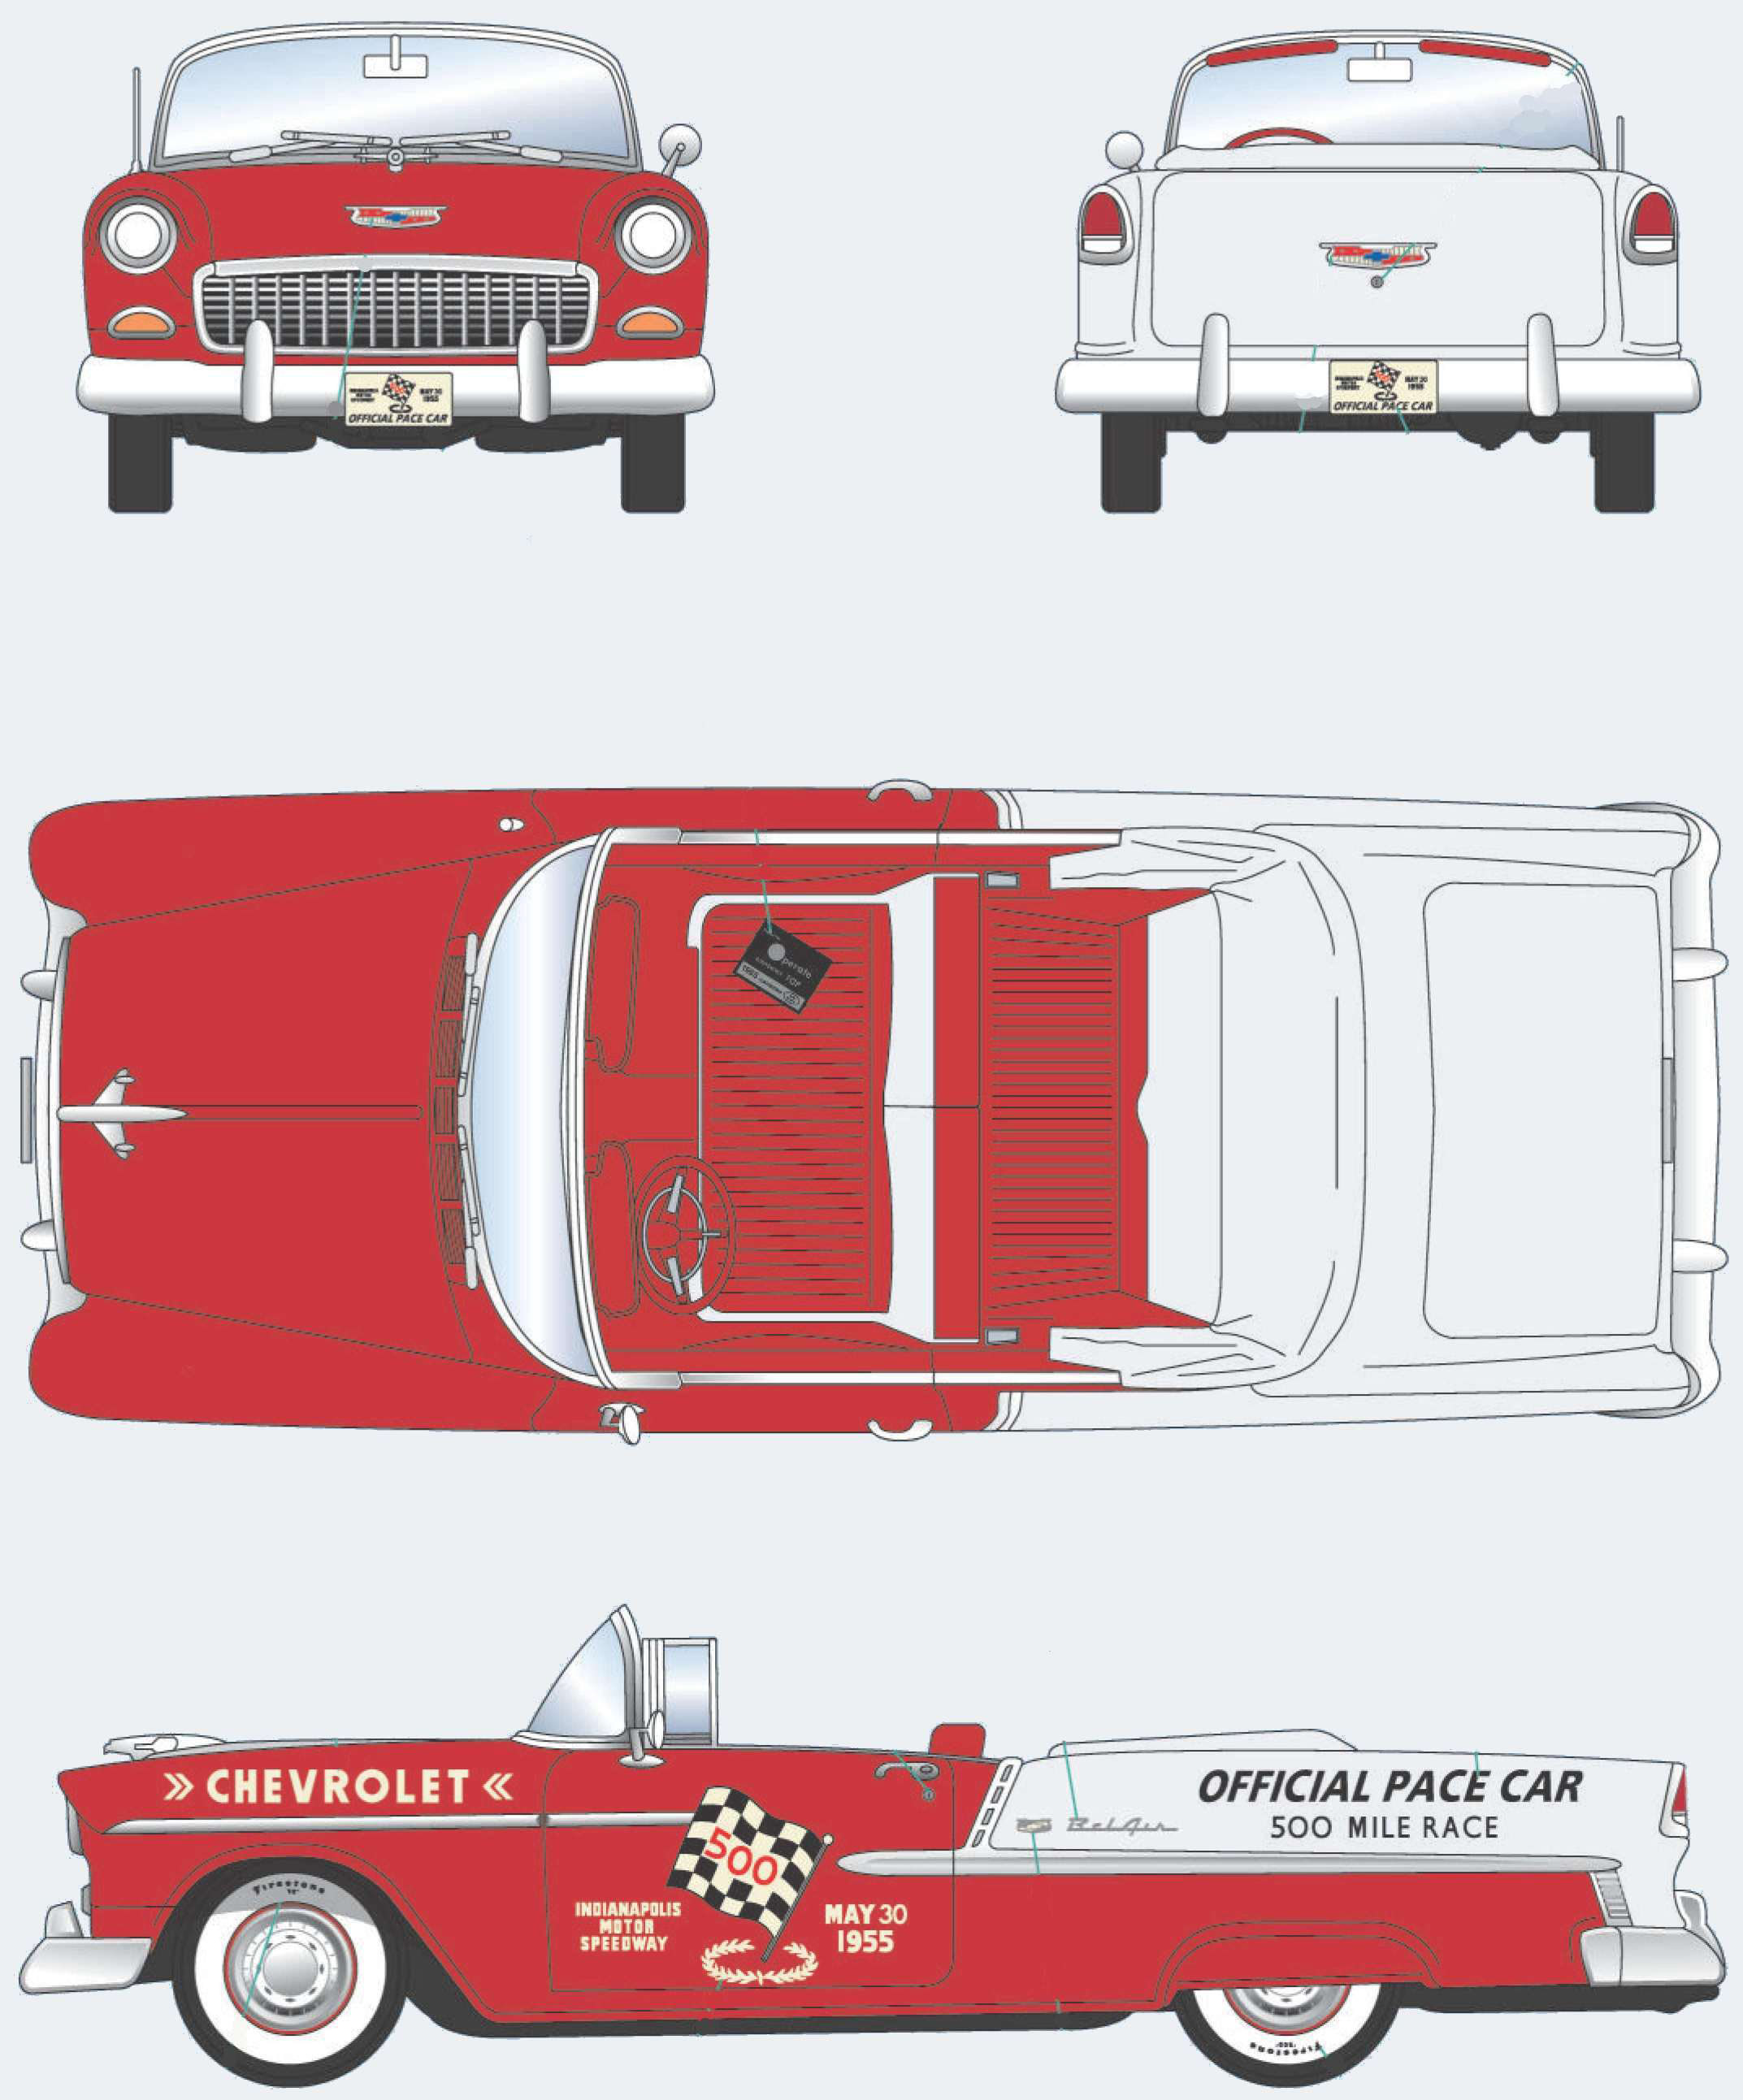 Chevrolet Bel Air Indy Pace Car blueprint